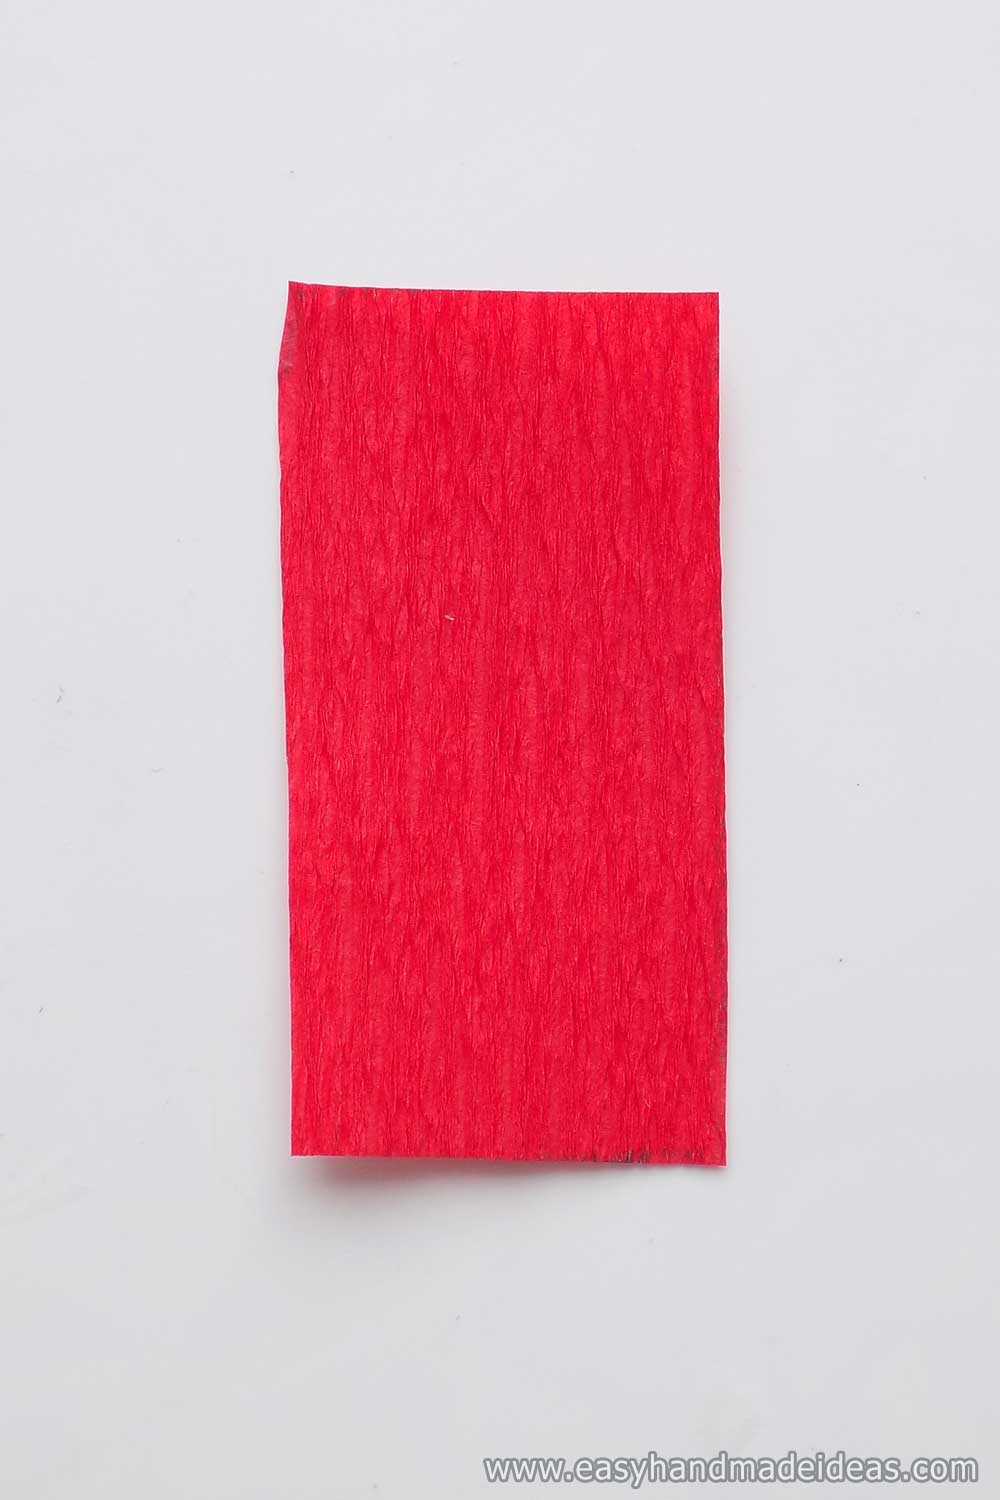 A Sheet of Red Paper